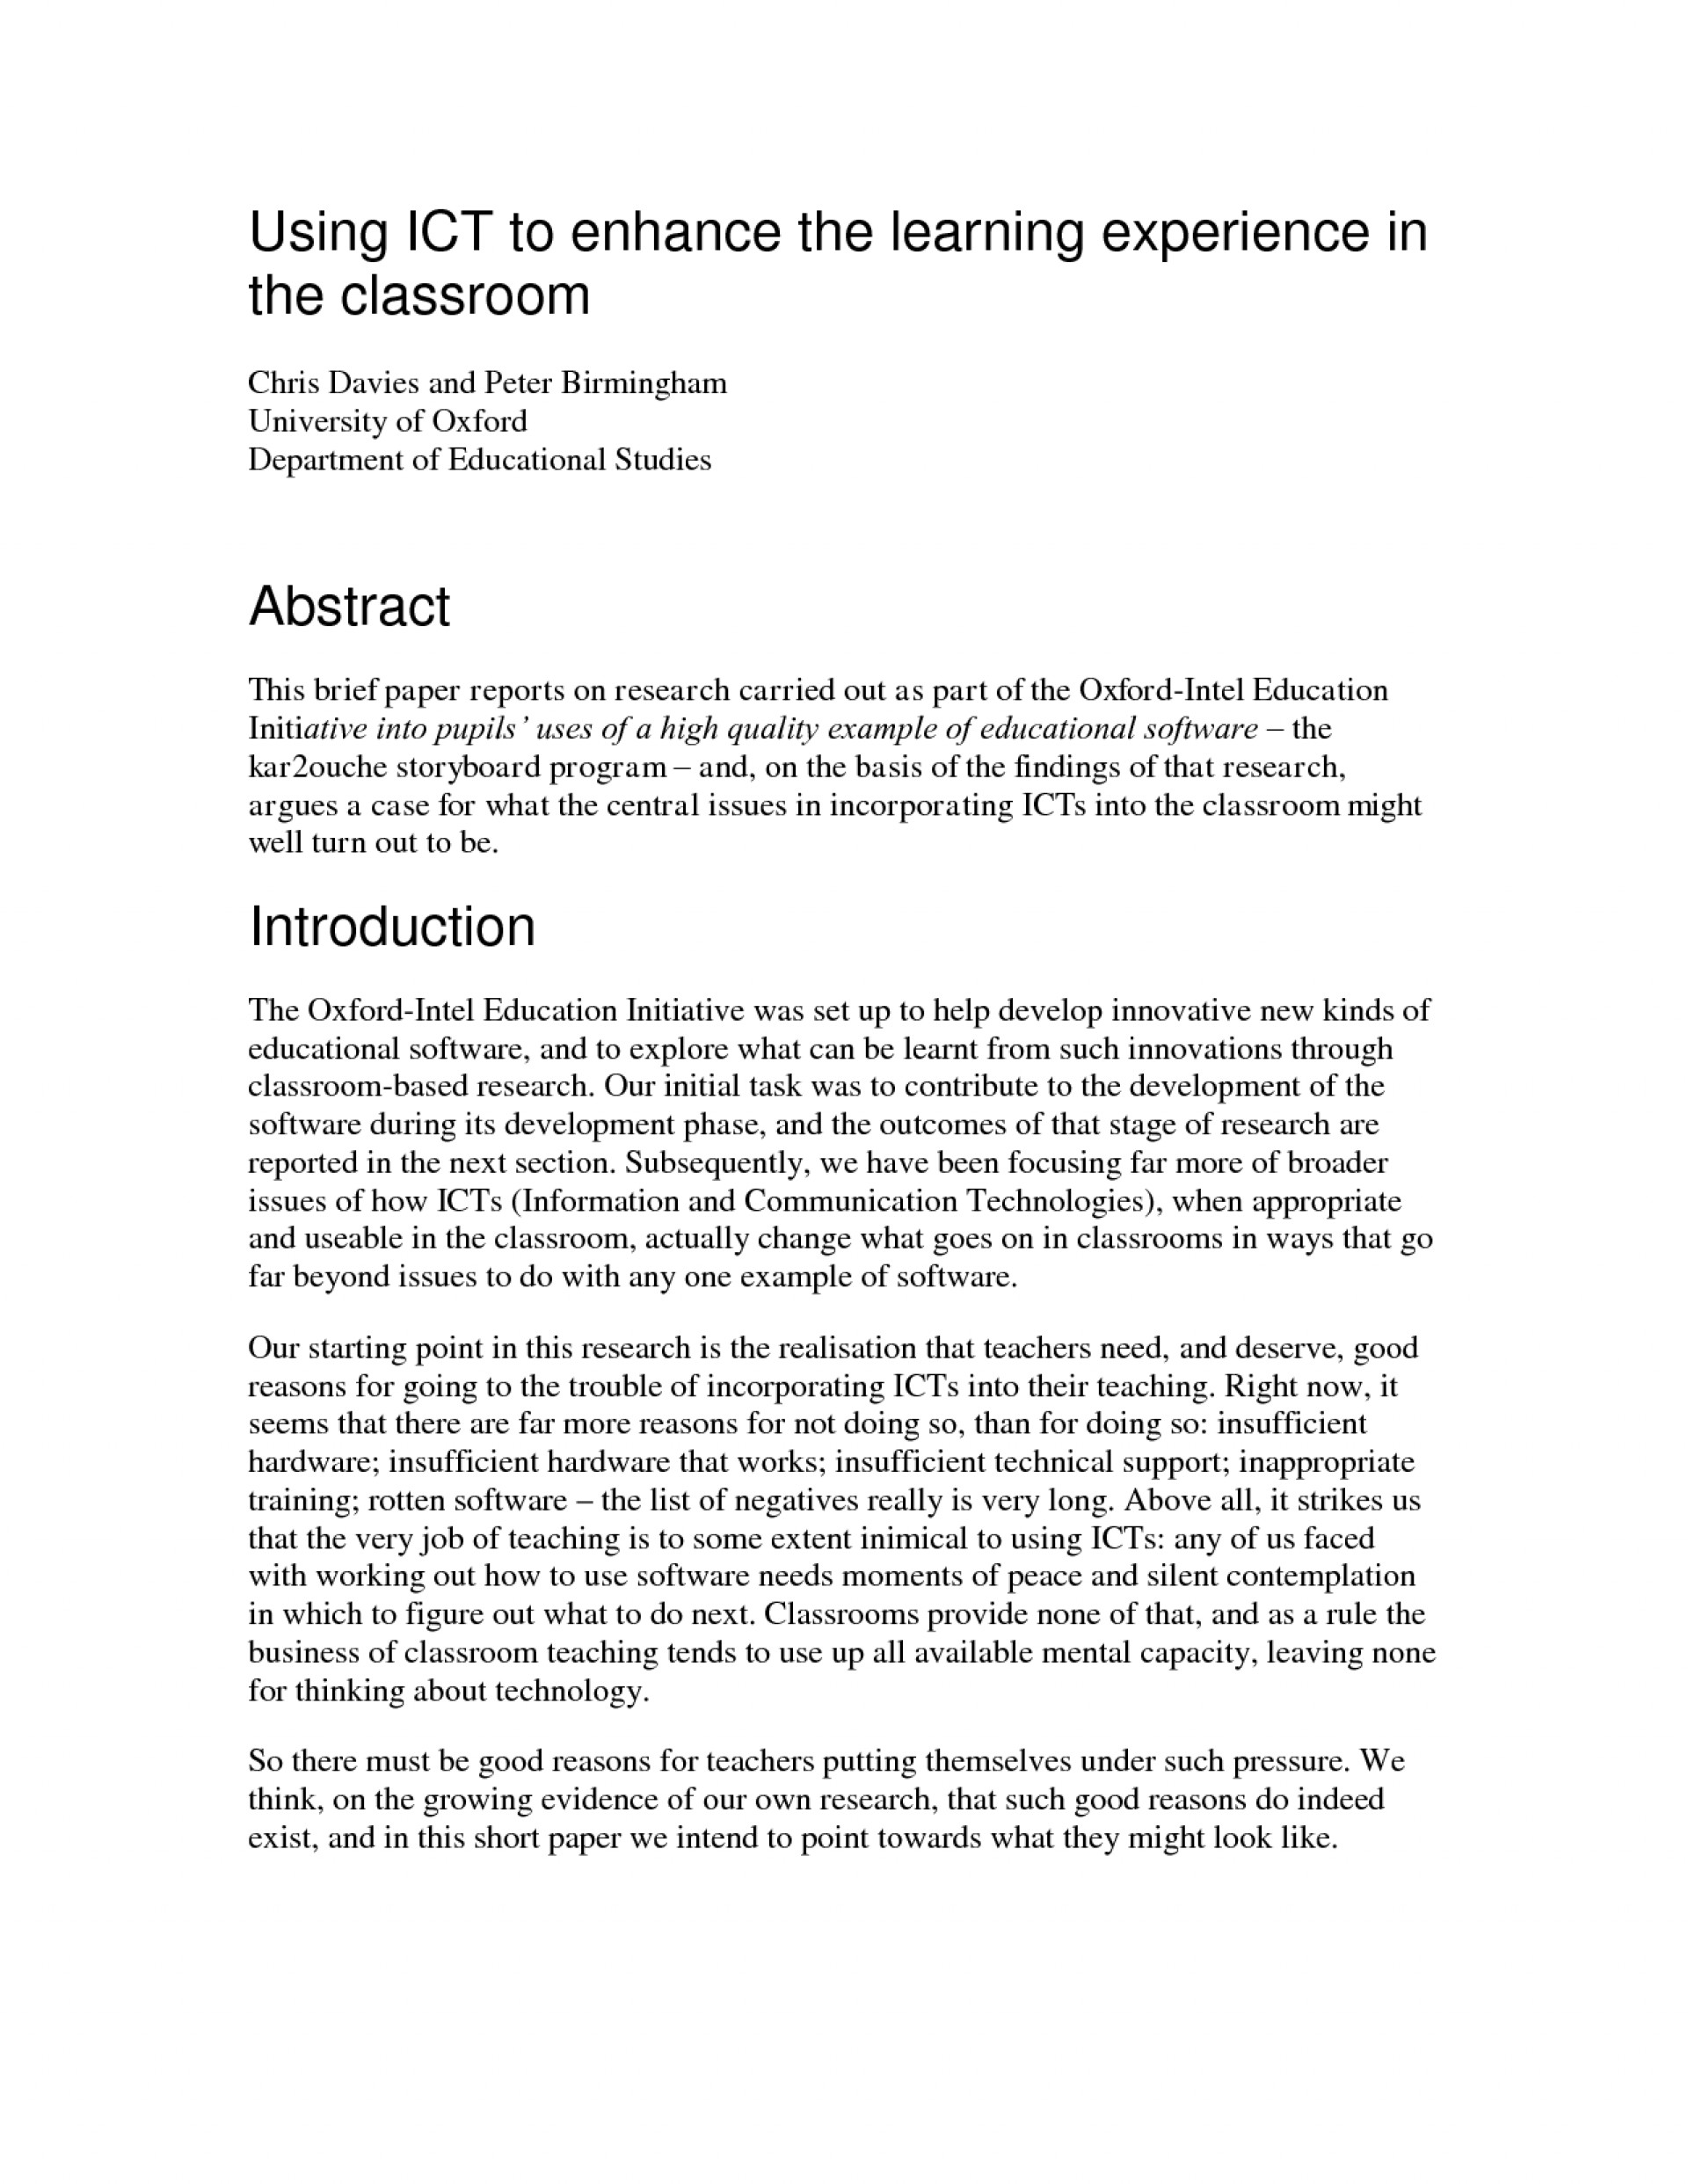 003 Abstract Essay Vnl5ujiga0 Unbelievable Sample Abstract/universal Definition Examples 1920